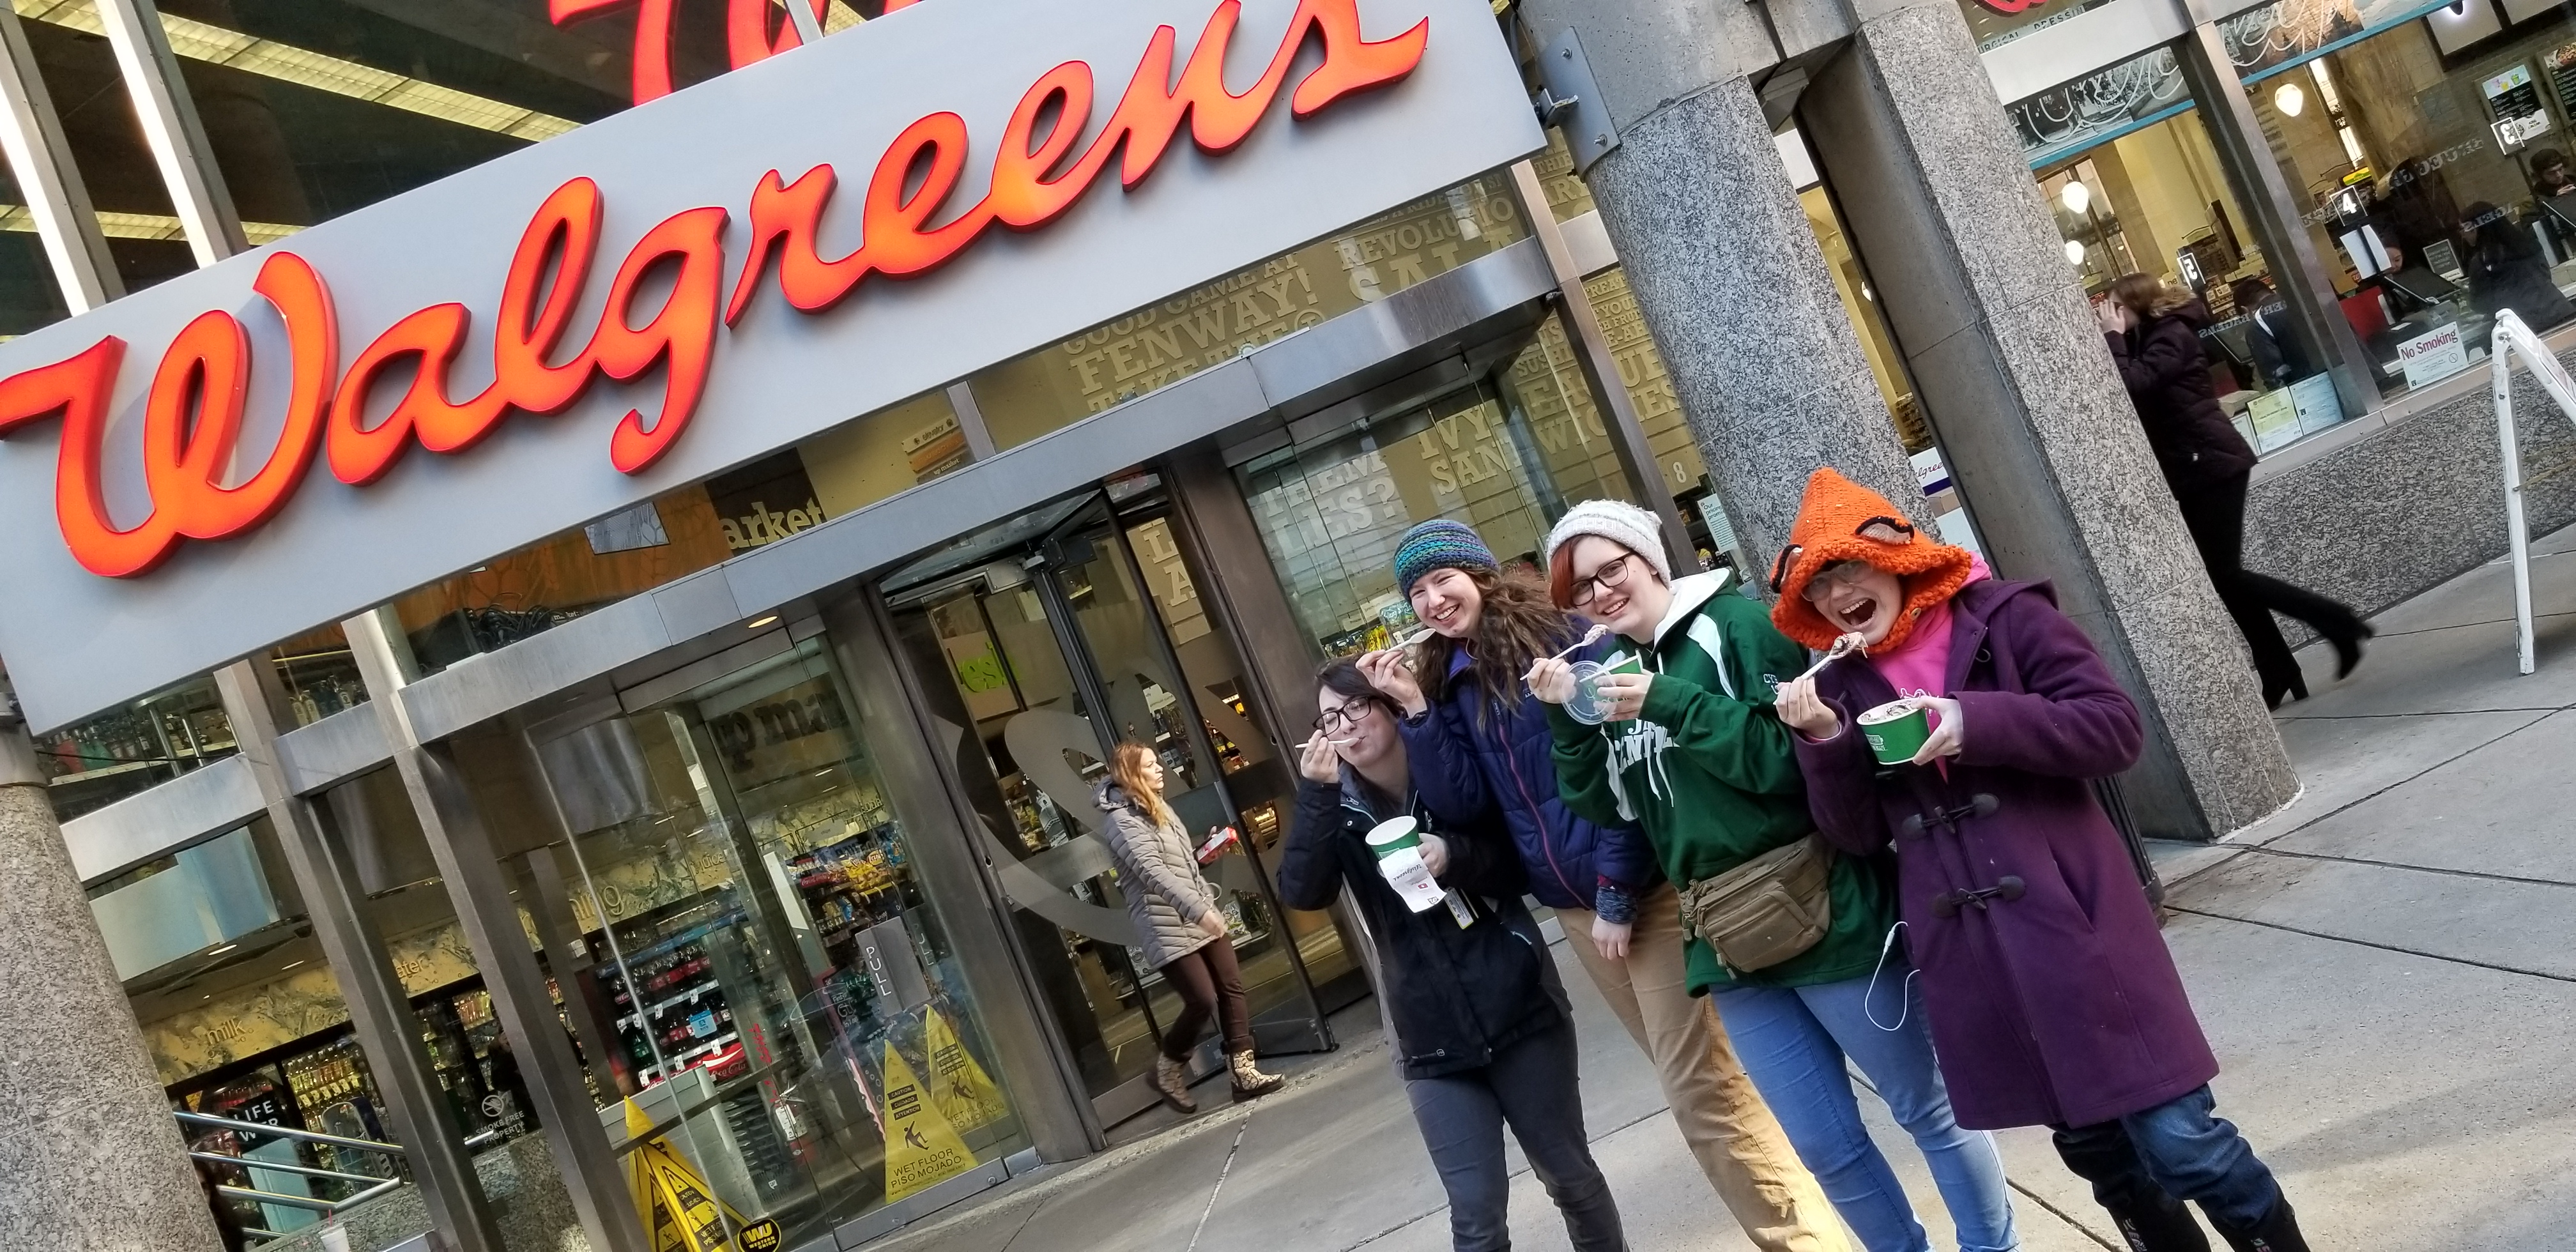 Teens from New Hampshire aren't used to finding a Walgreens with a Frozen Yogurt bar in it. So on a FREEZING day, they get Frozen Yogurt. Crazy Teens.  :)